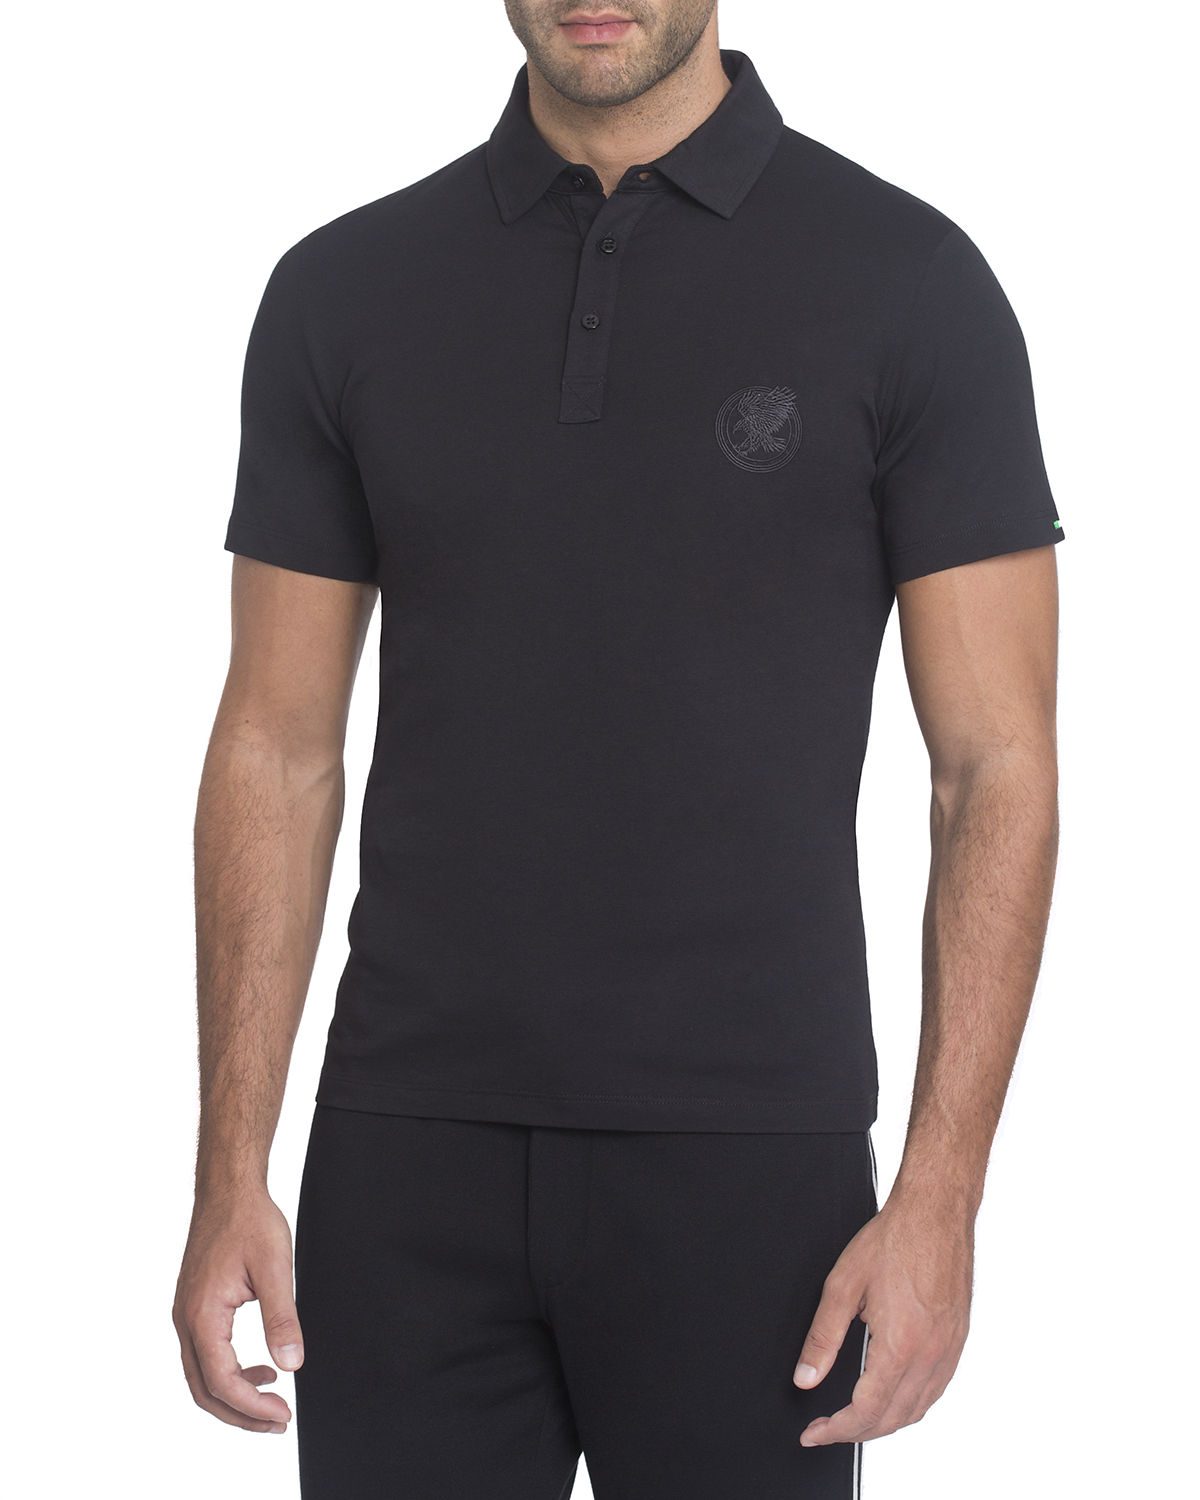 Stefano Ricci Embroidered Polo Shirt Neiman Marcus